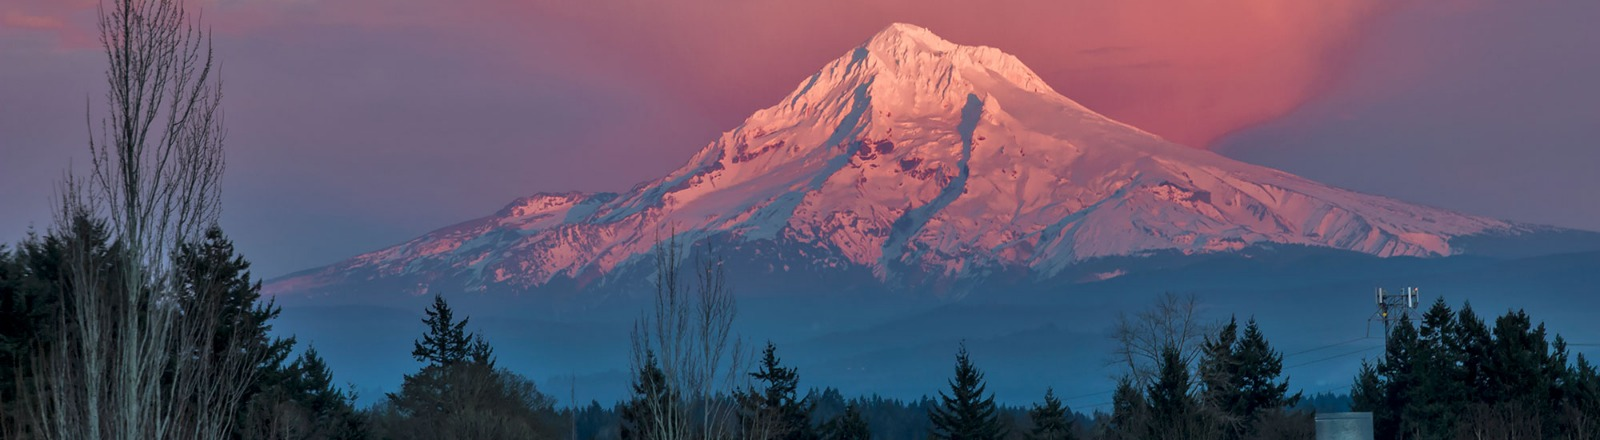 The fading sun shines on the peak of Mt Hood as the rest of the mountain and surrounding sky are bathed in pink alpenglow in Oregon's Mt. Hood Territory